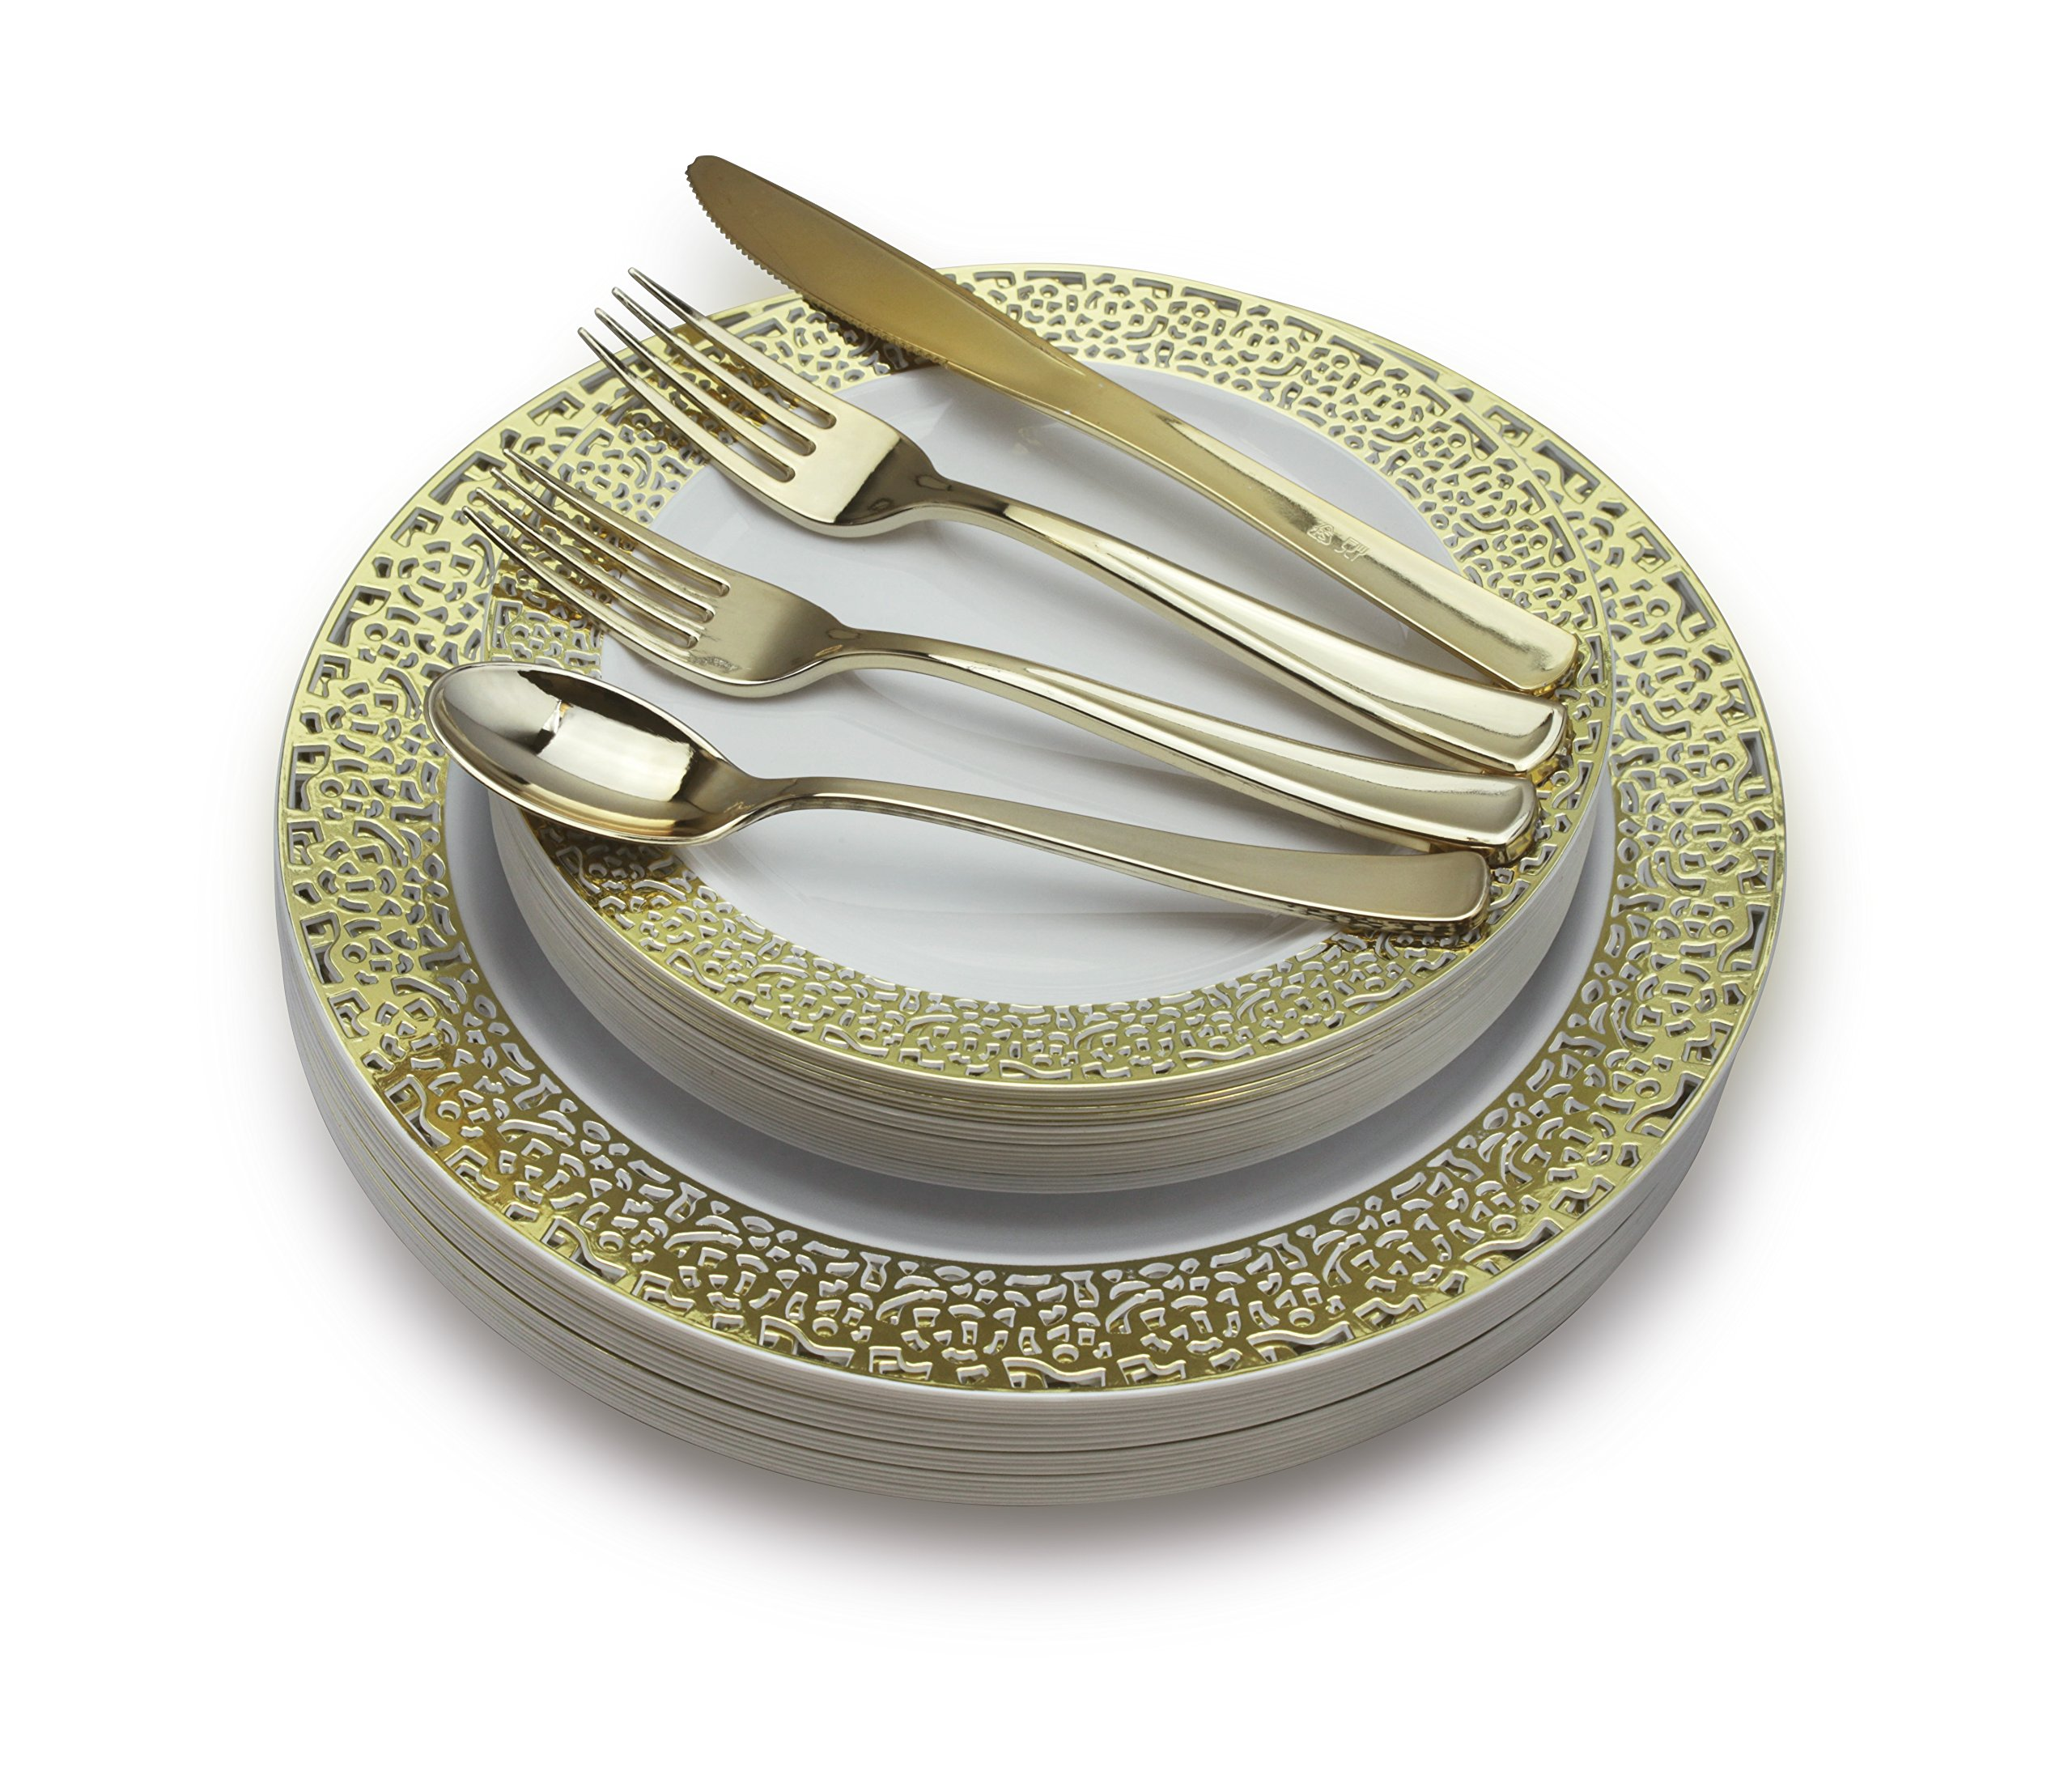 '' OCCASIONS '' 720 PCS / 120 GUEST Wedding Disposable Plastic Plate and Silverware Combo Set ( Florence White / Gold Plates , with Gold silverware)